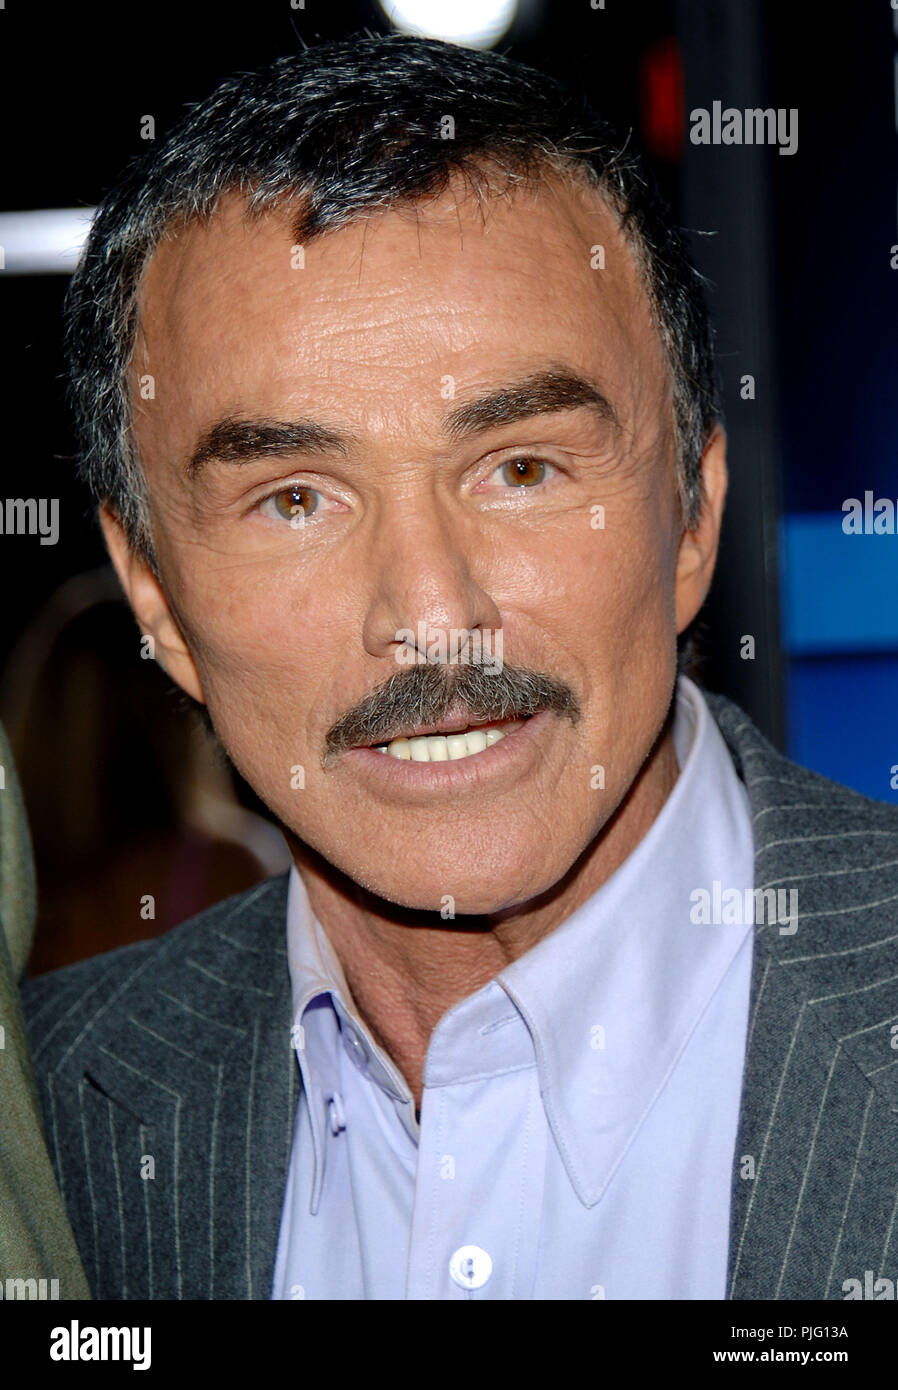 Burt Reynolds arriving at the Longest Yard Premiere at the Chinese Theatre in Los Angeles. May 19, 2005.1a_ReynoldsBurt021  Event in Hollywood Life - California, Red Carpet Event, USA, Film Industry, Celebrities, Photography, Bestof, Arts Culture and Entertainment, Topix Celebrities fashion, Best of, Hollywood Life, Event in Hollywood Life - California,  movie celebrities, Arts Culture and Entertainment, vertical, headshot, - Stock Image